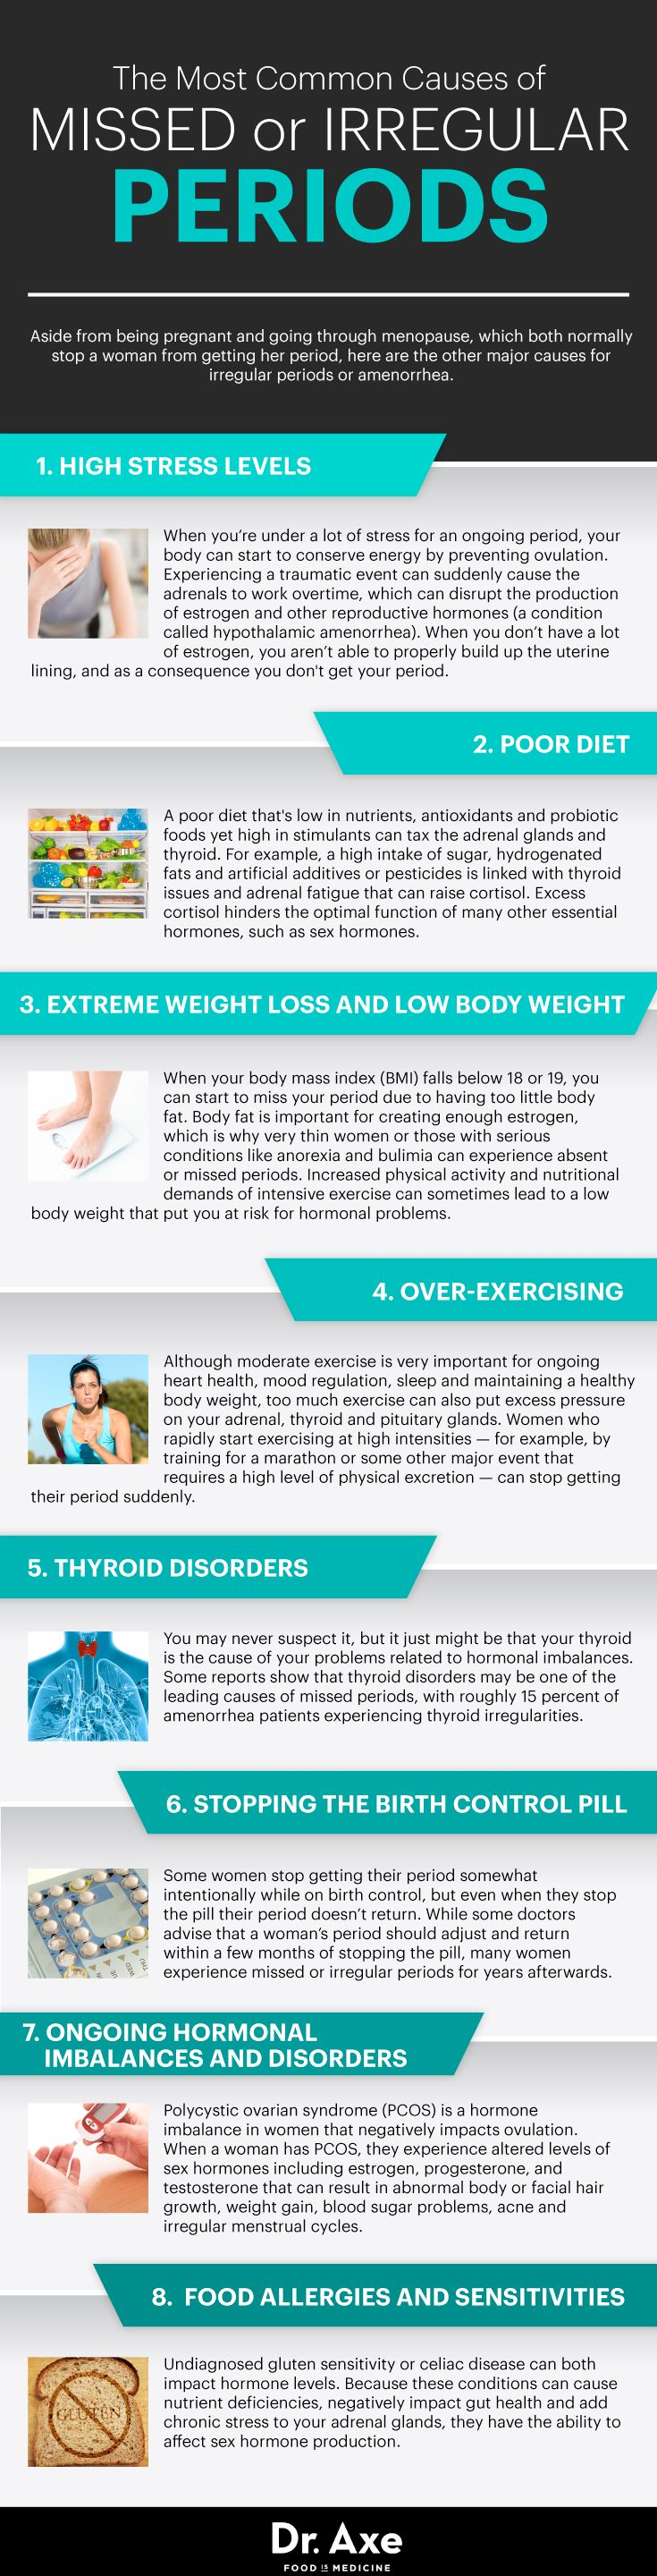 Causes of irregular periods infographic - Dr. Axe http://www.draxe.com #health #holistic #natural